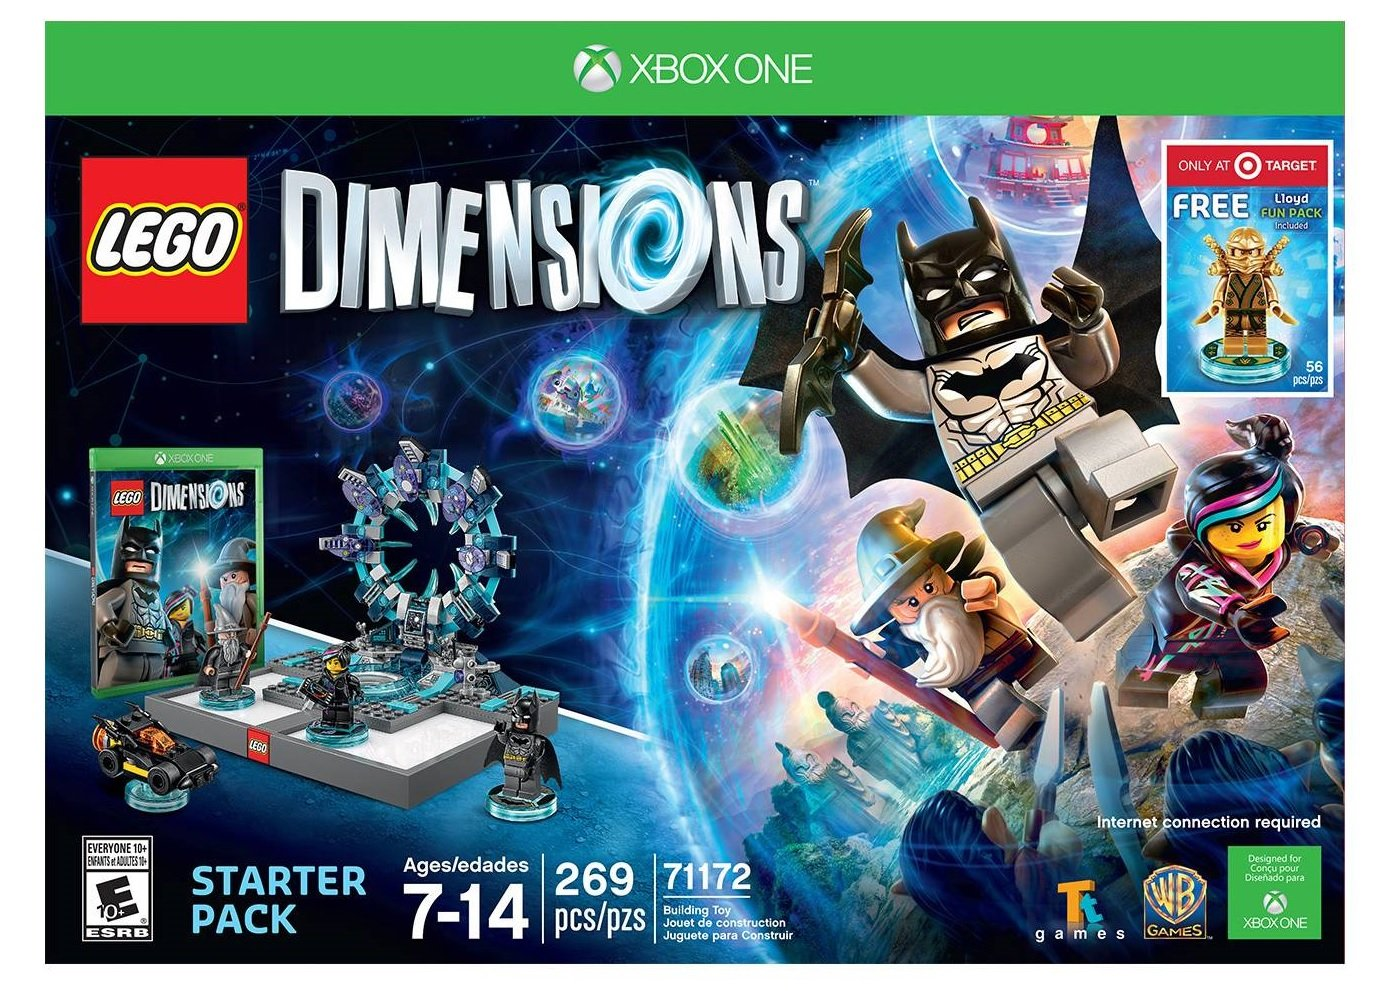 LEGO Dimensions Starter Pack with Lloyd Fun Pack - Xbox One by Warner Home Video - Games (Image #1)